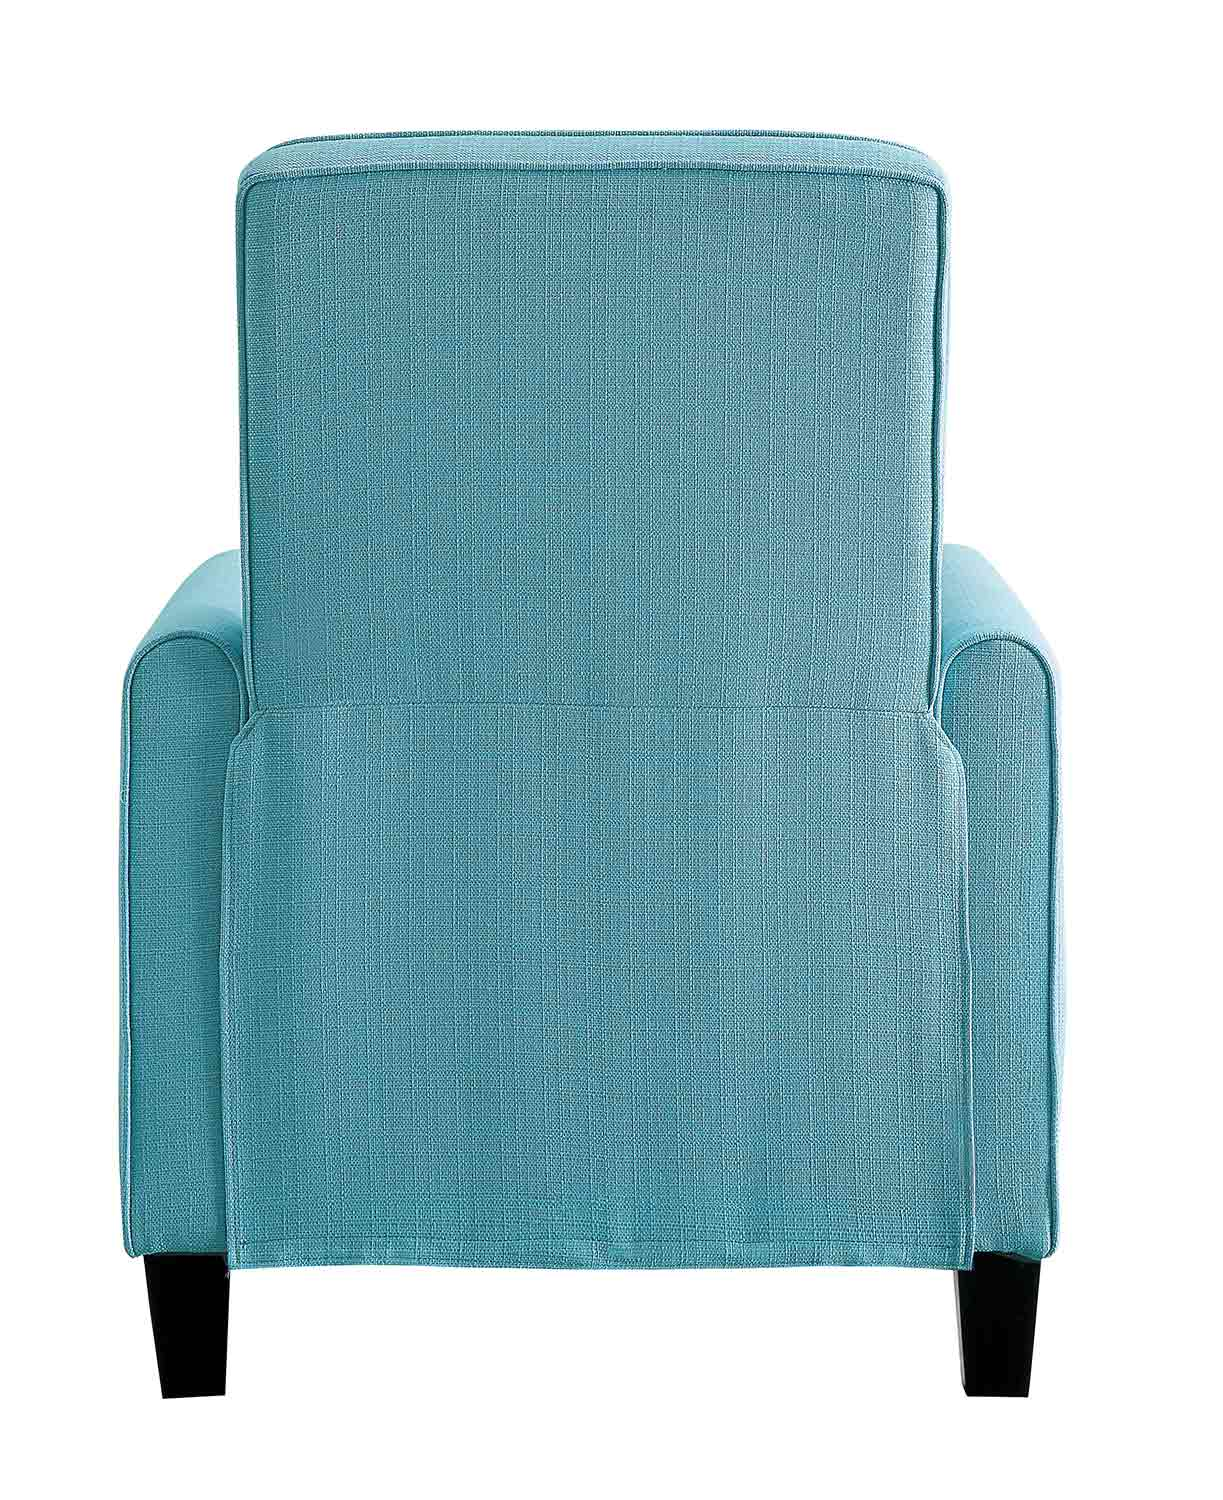 Homelegance Darcel Push Back Reclining Chair - Blue